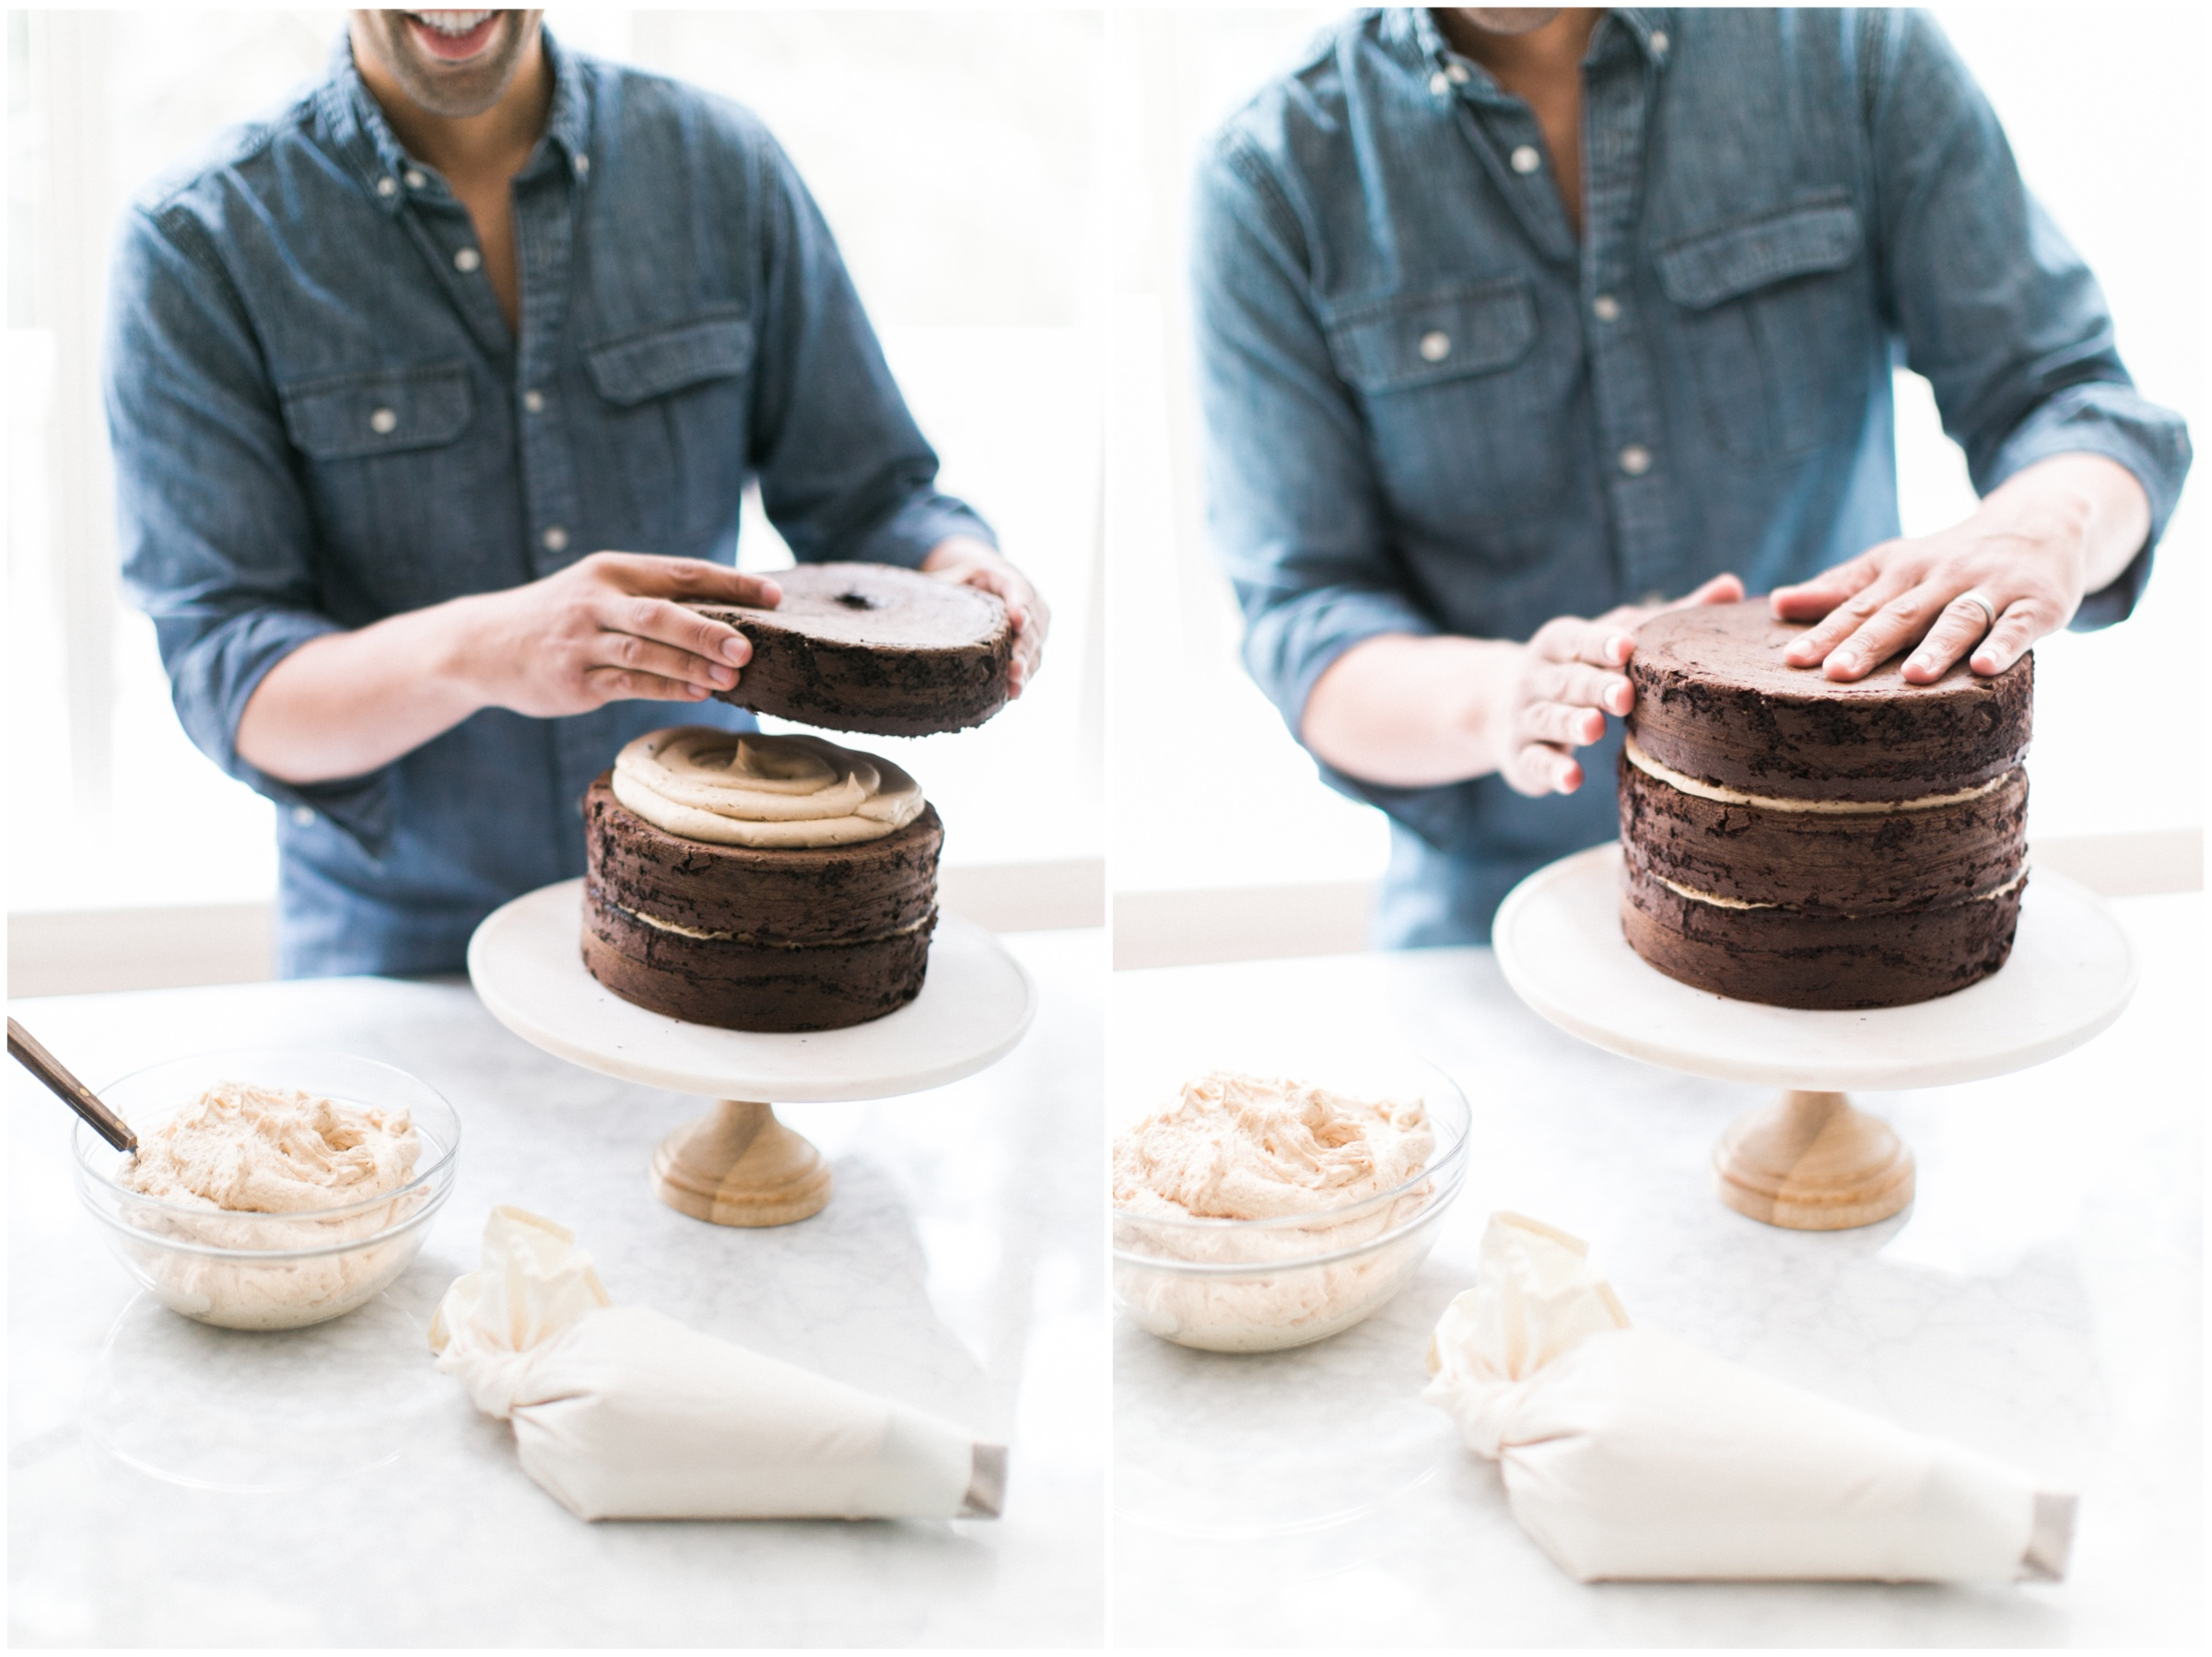 sinclair-and-moore-chocolate-peanutbutter-cake-19